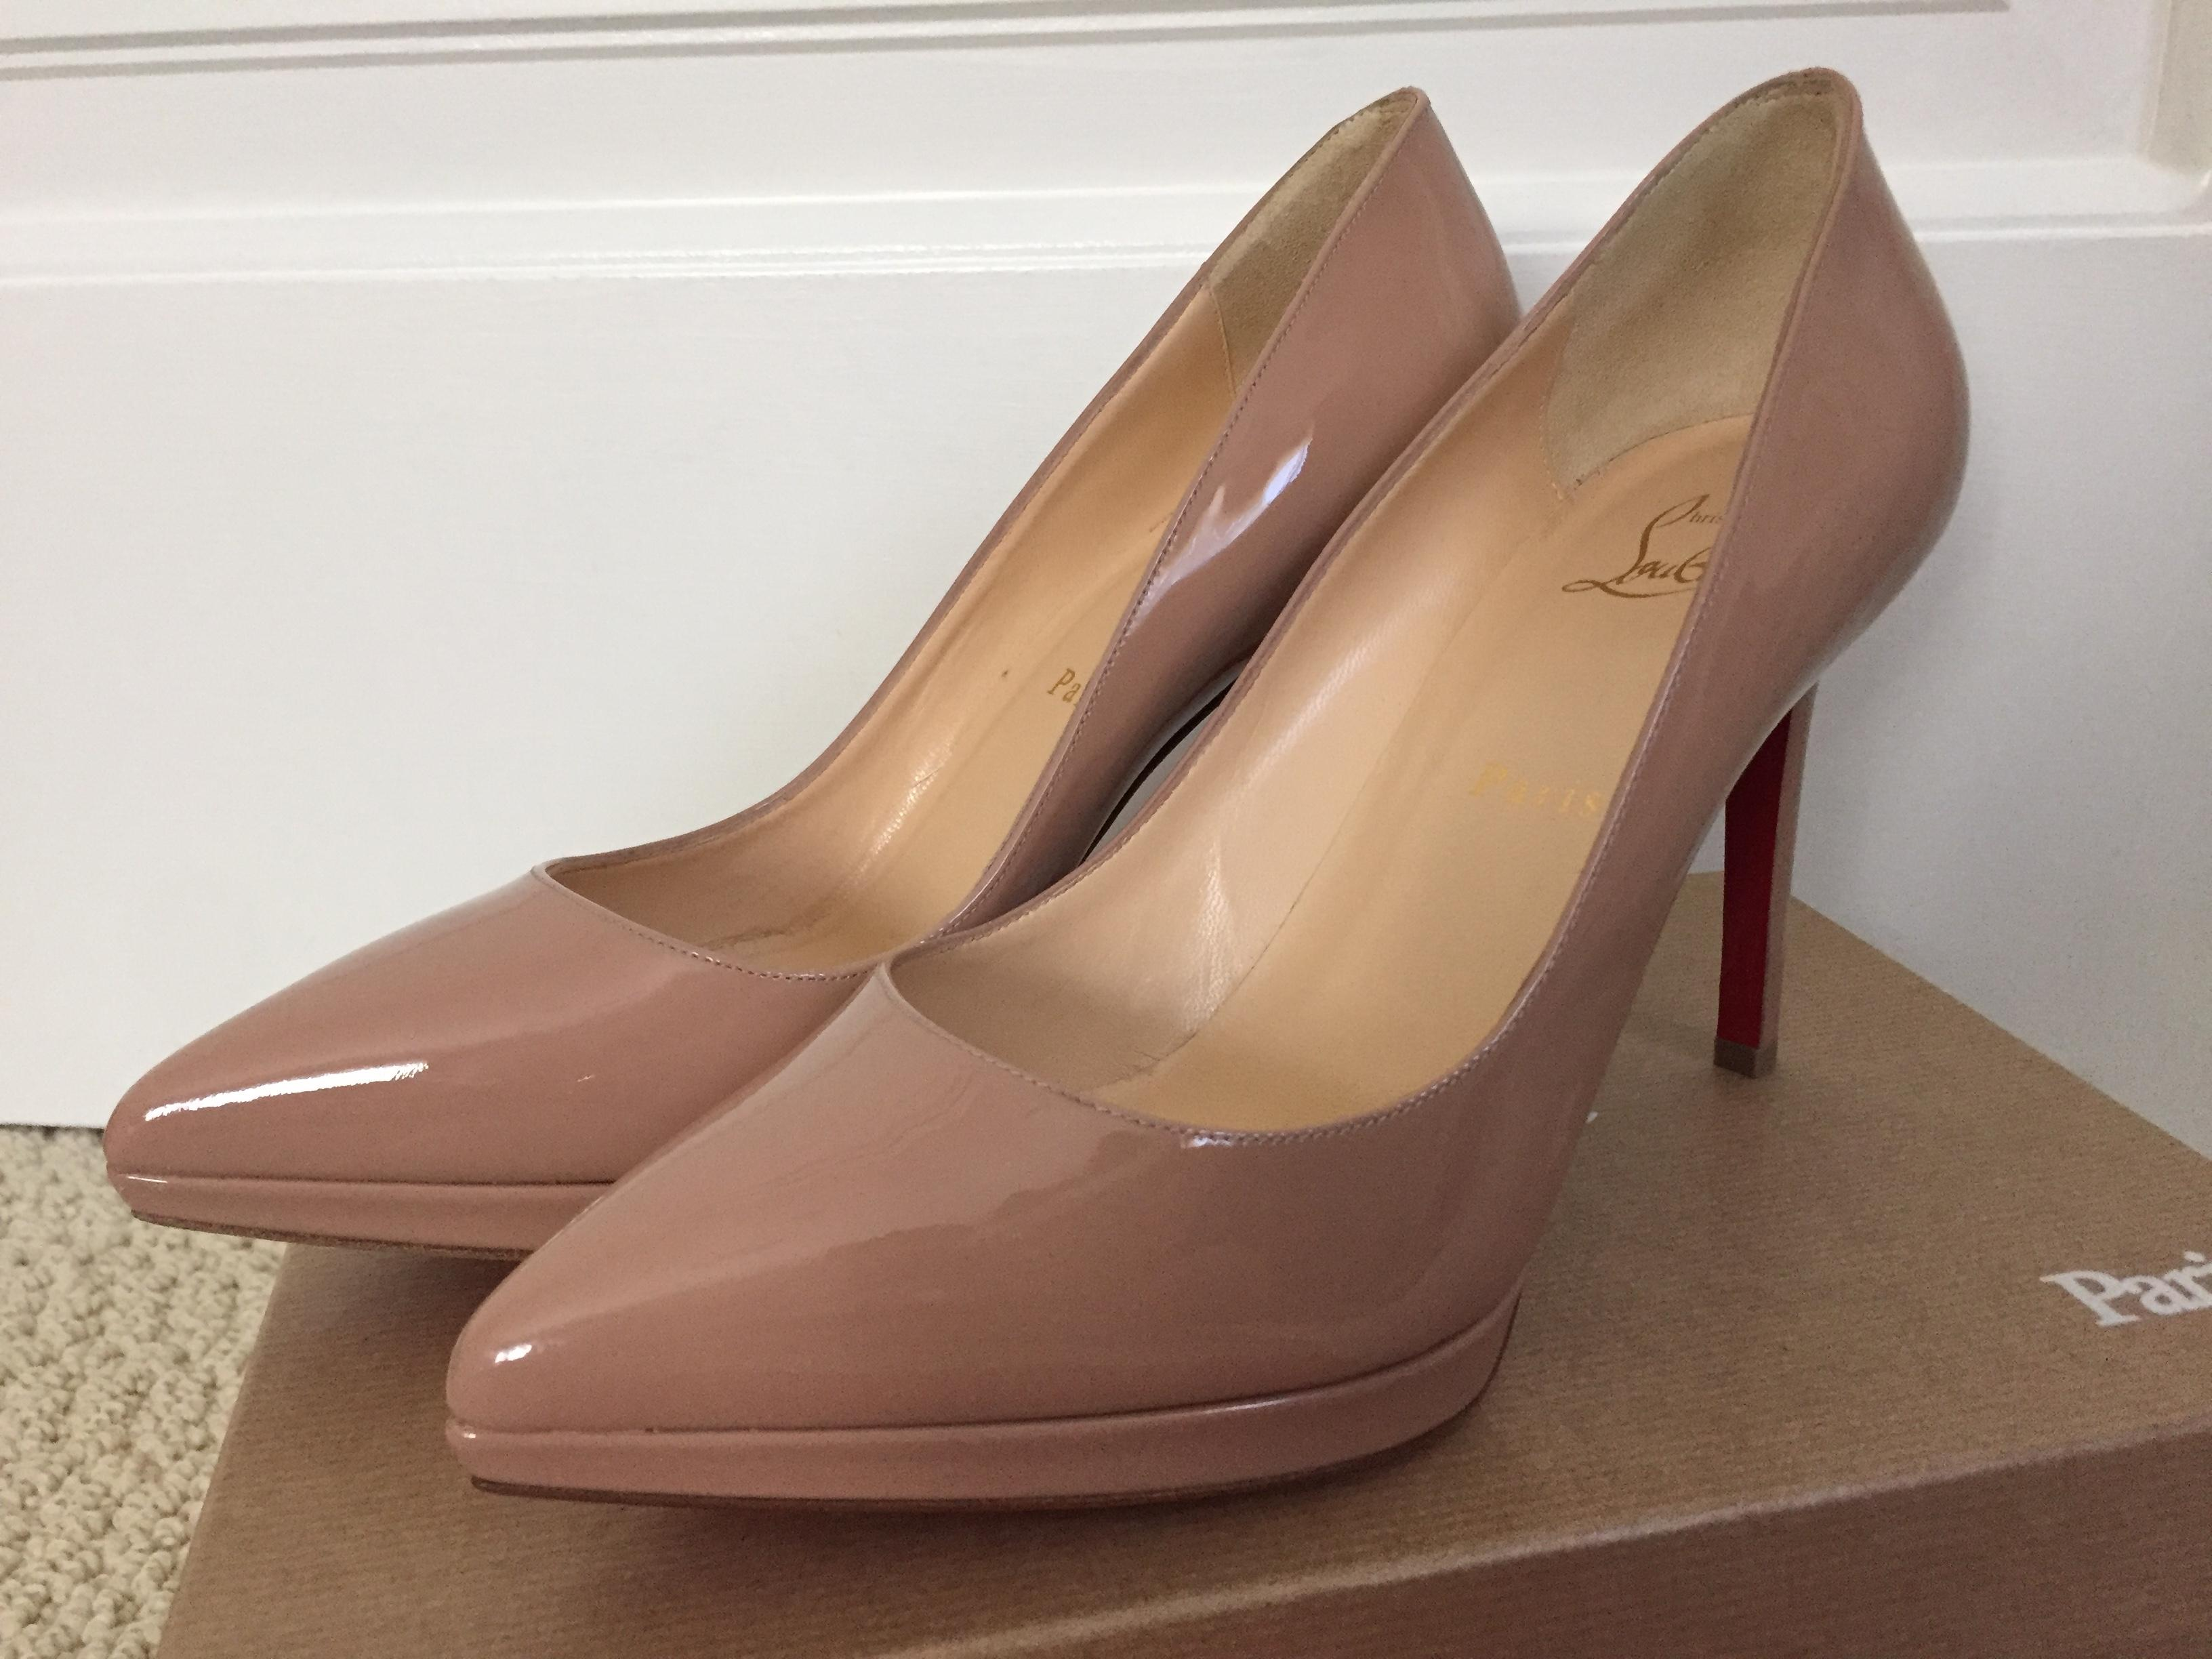 online store 3358d 86b58 Christian Louboutin Nude Pigalle Plato 100 Patent Pointed ...